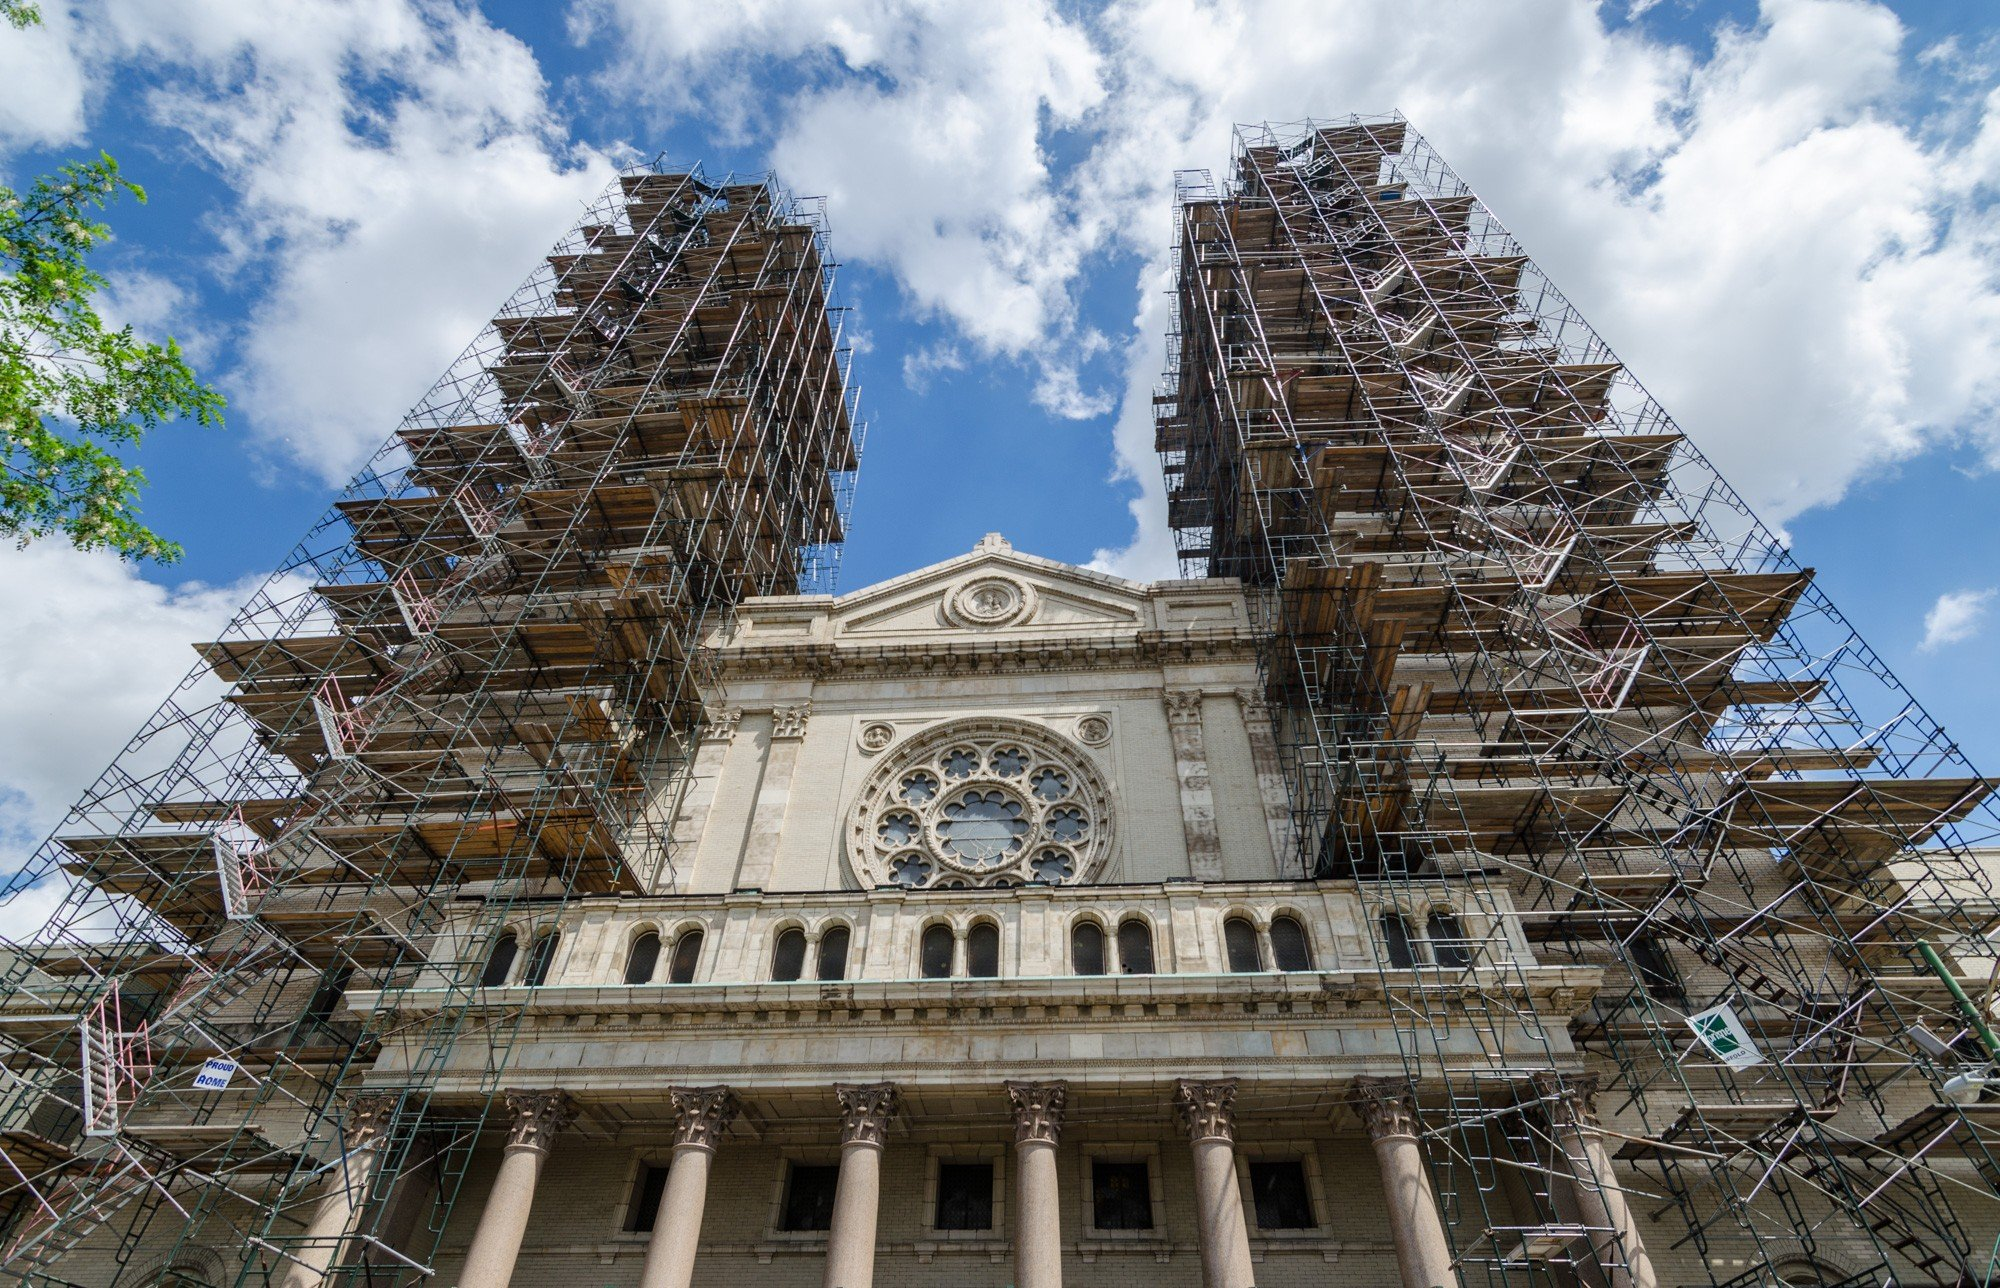 Scaffolds surround each of the two 185-foot bell towers, which allegedly resemble the two Baroque towers of the Basilica of San Juan de Los Lagos in Mexico.  Source: Eric Allix Rogers, Open House Chicago